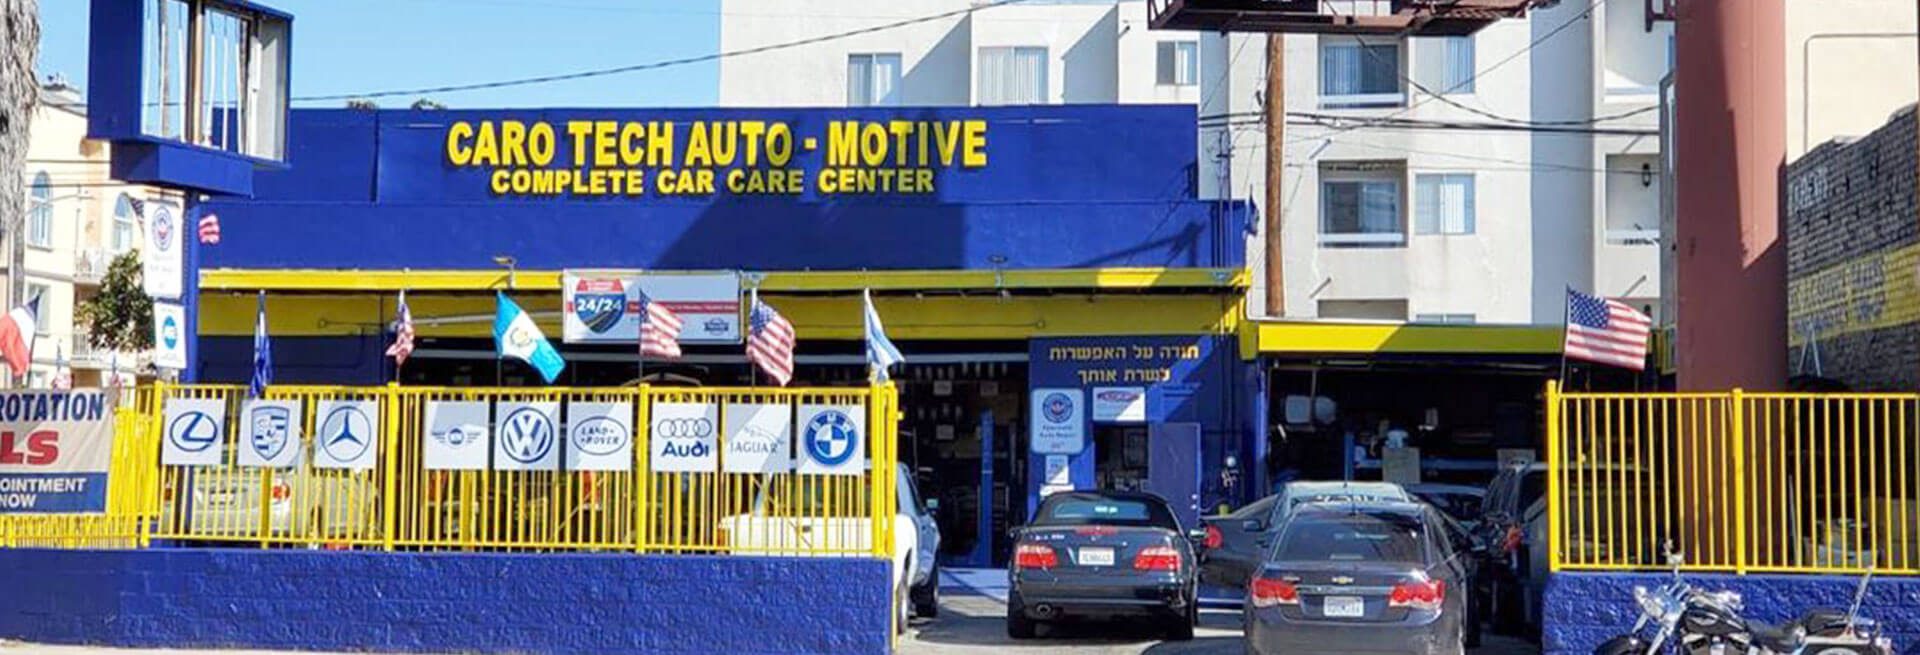 carotech-napa-auto-care-auto-repair-los-angeles-90035-1